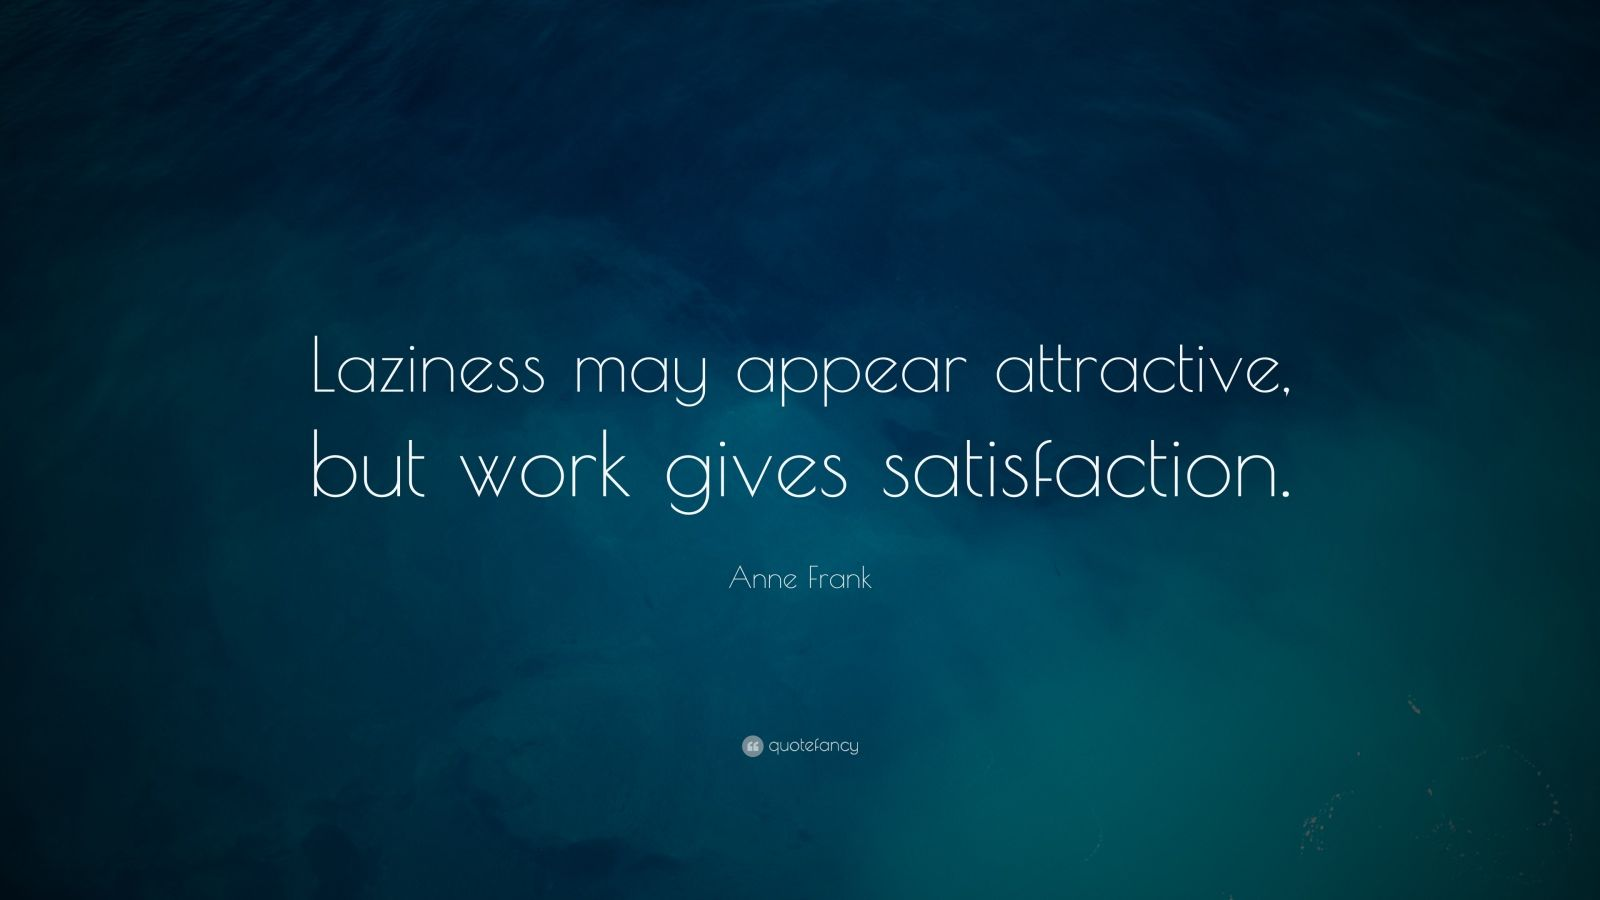 "Quotes About Work: ""Laziness may appear attractive, but work gives satisfaction."" — Anne Frank"